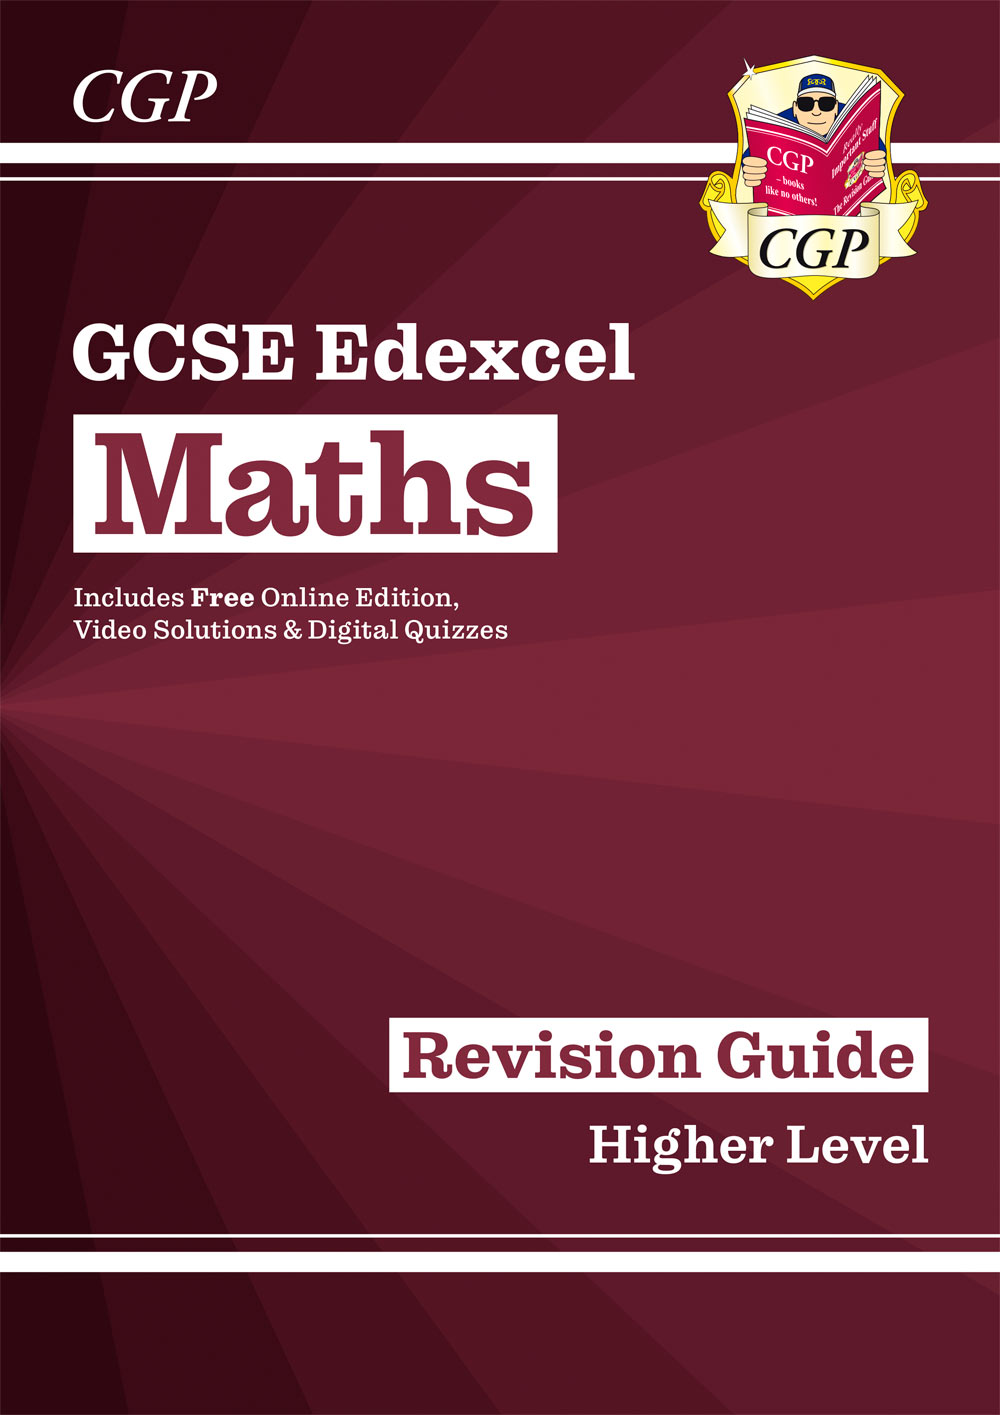 MXHR47 - New 2021 GCSE Maths Edexcel Revision Guide: Higher inc Online Edition, Videos & Quizzes